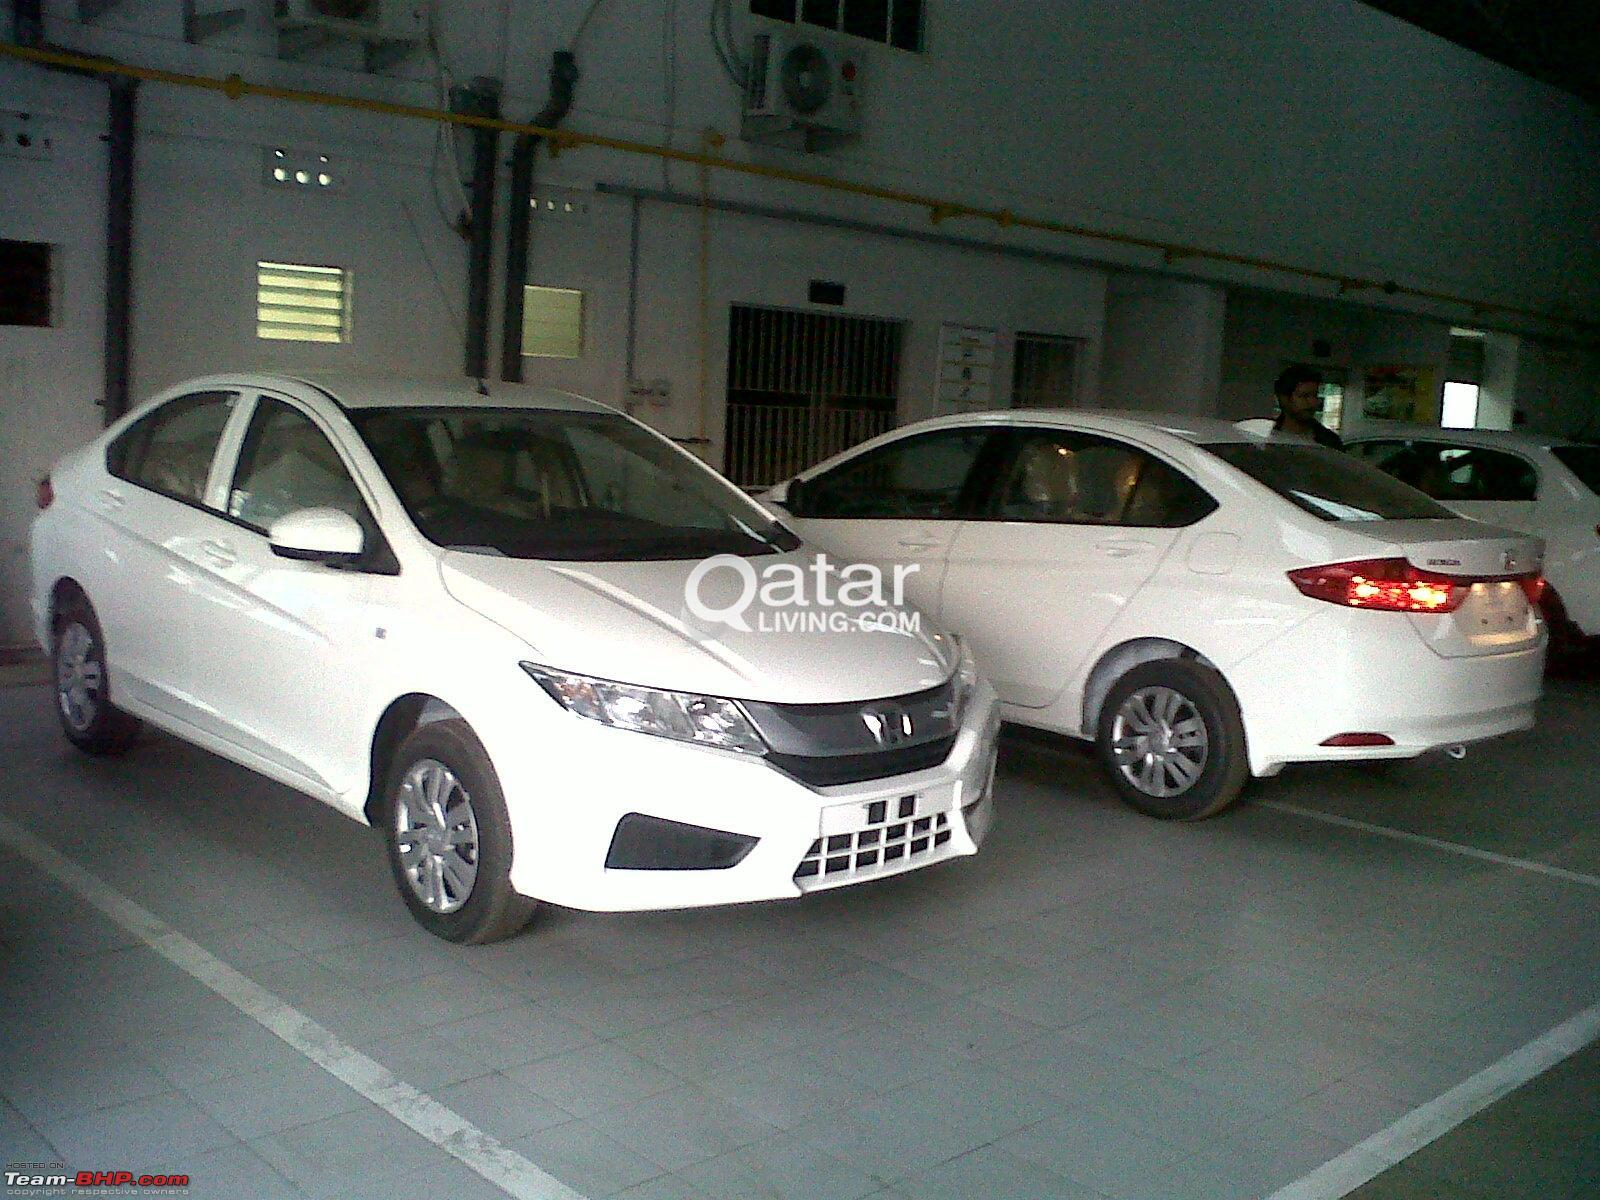 Honda City Used Cars In Sale With An Installment Facility Qatar Living